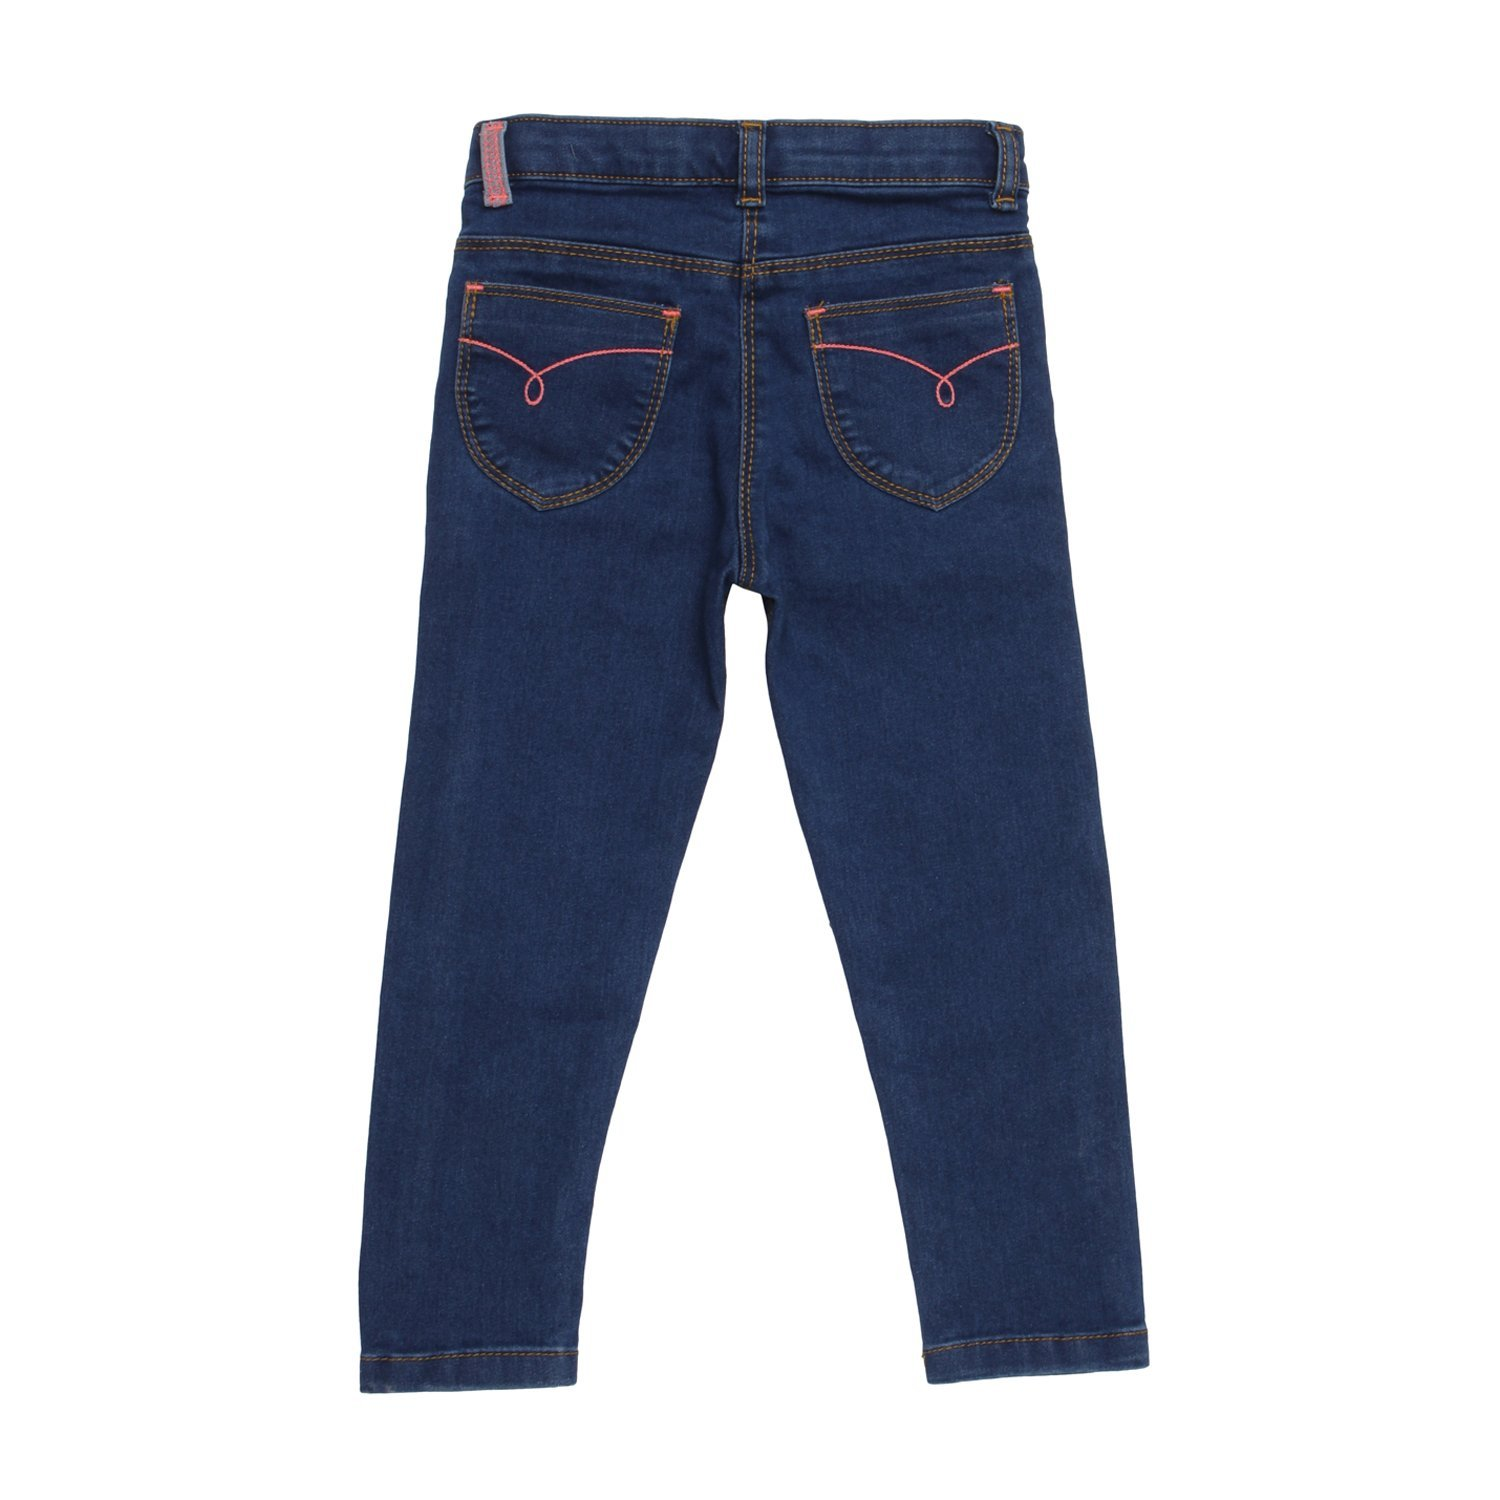 Tales /& Stories Boys Cotton Polyster Elastane Plain Slim Fit Clean Look Jeans